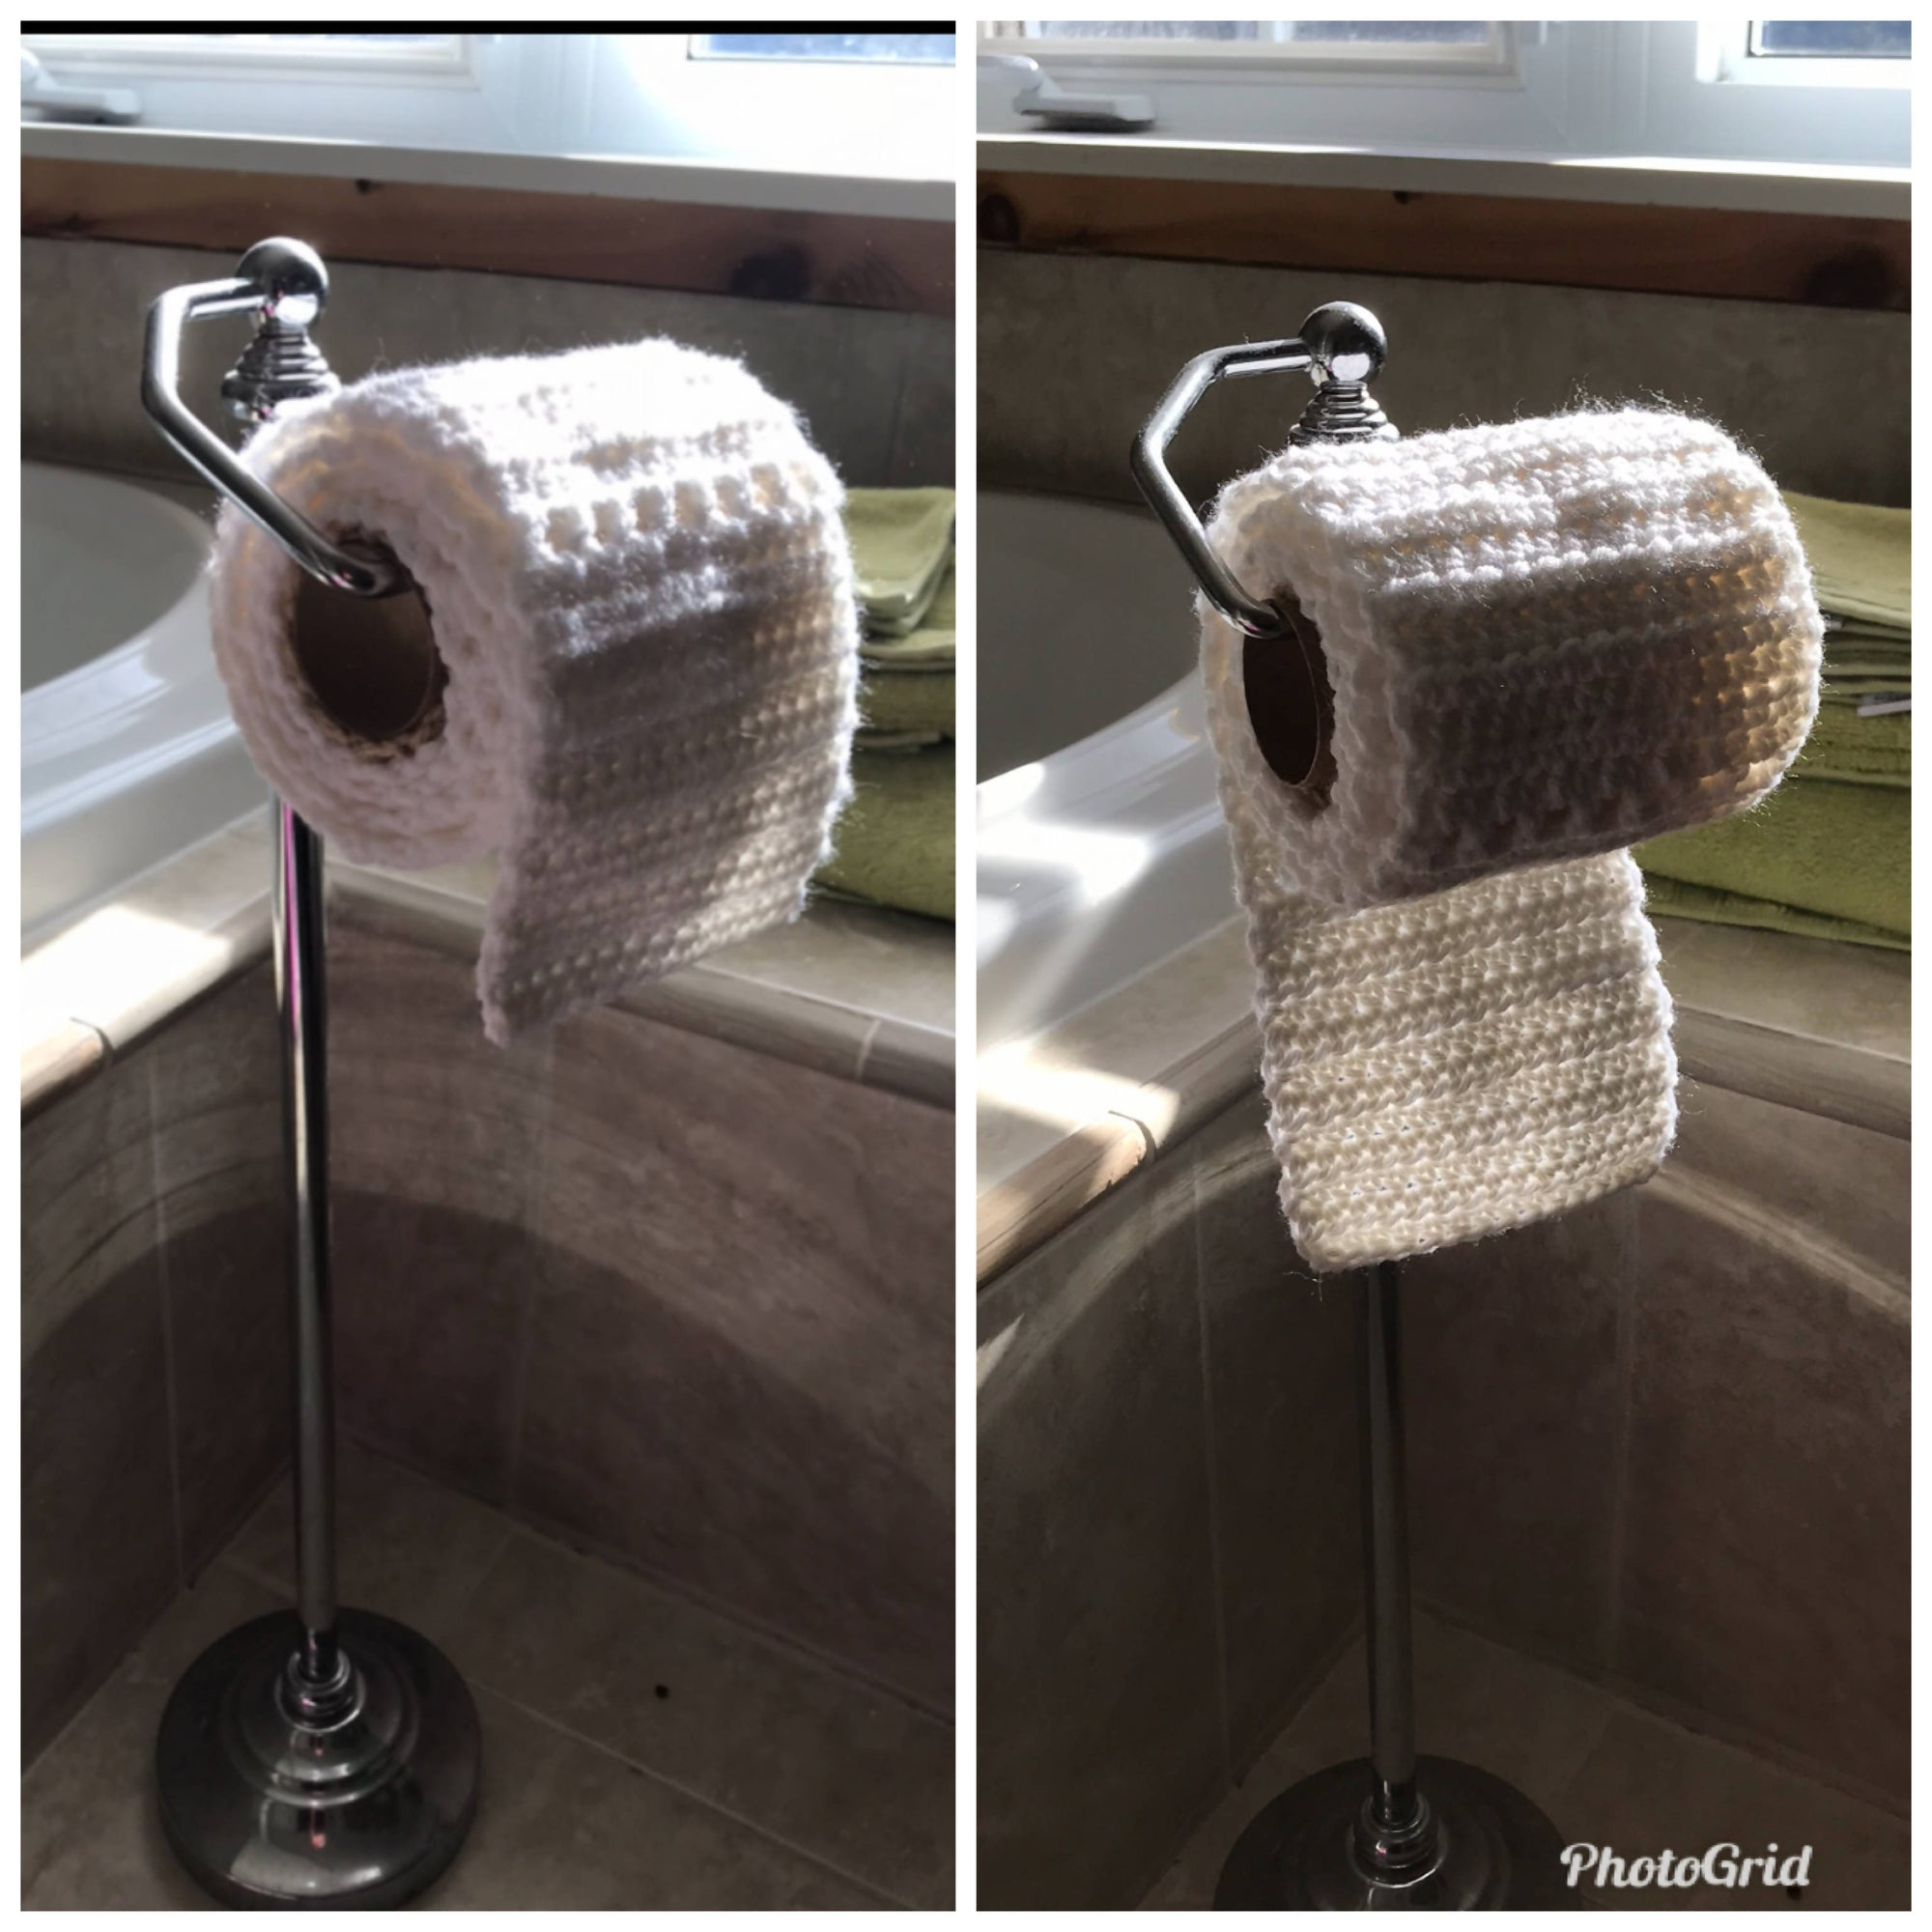 Crochet Roll of Toilet Paper